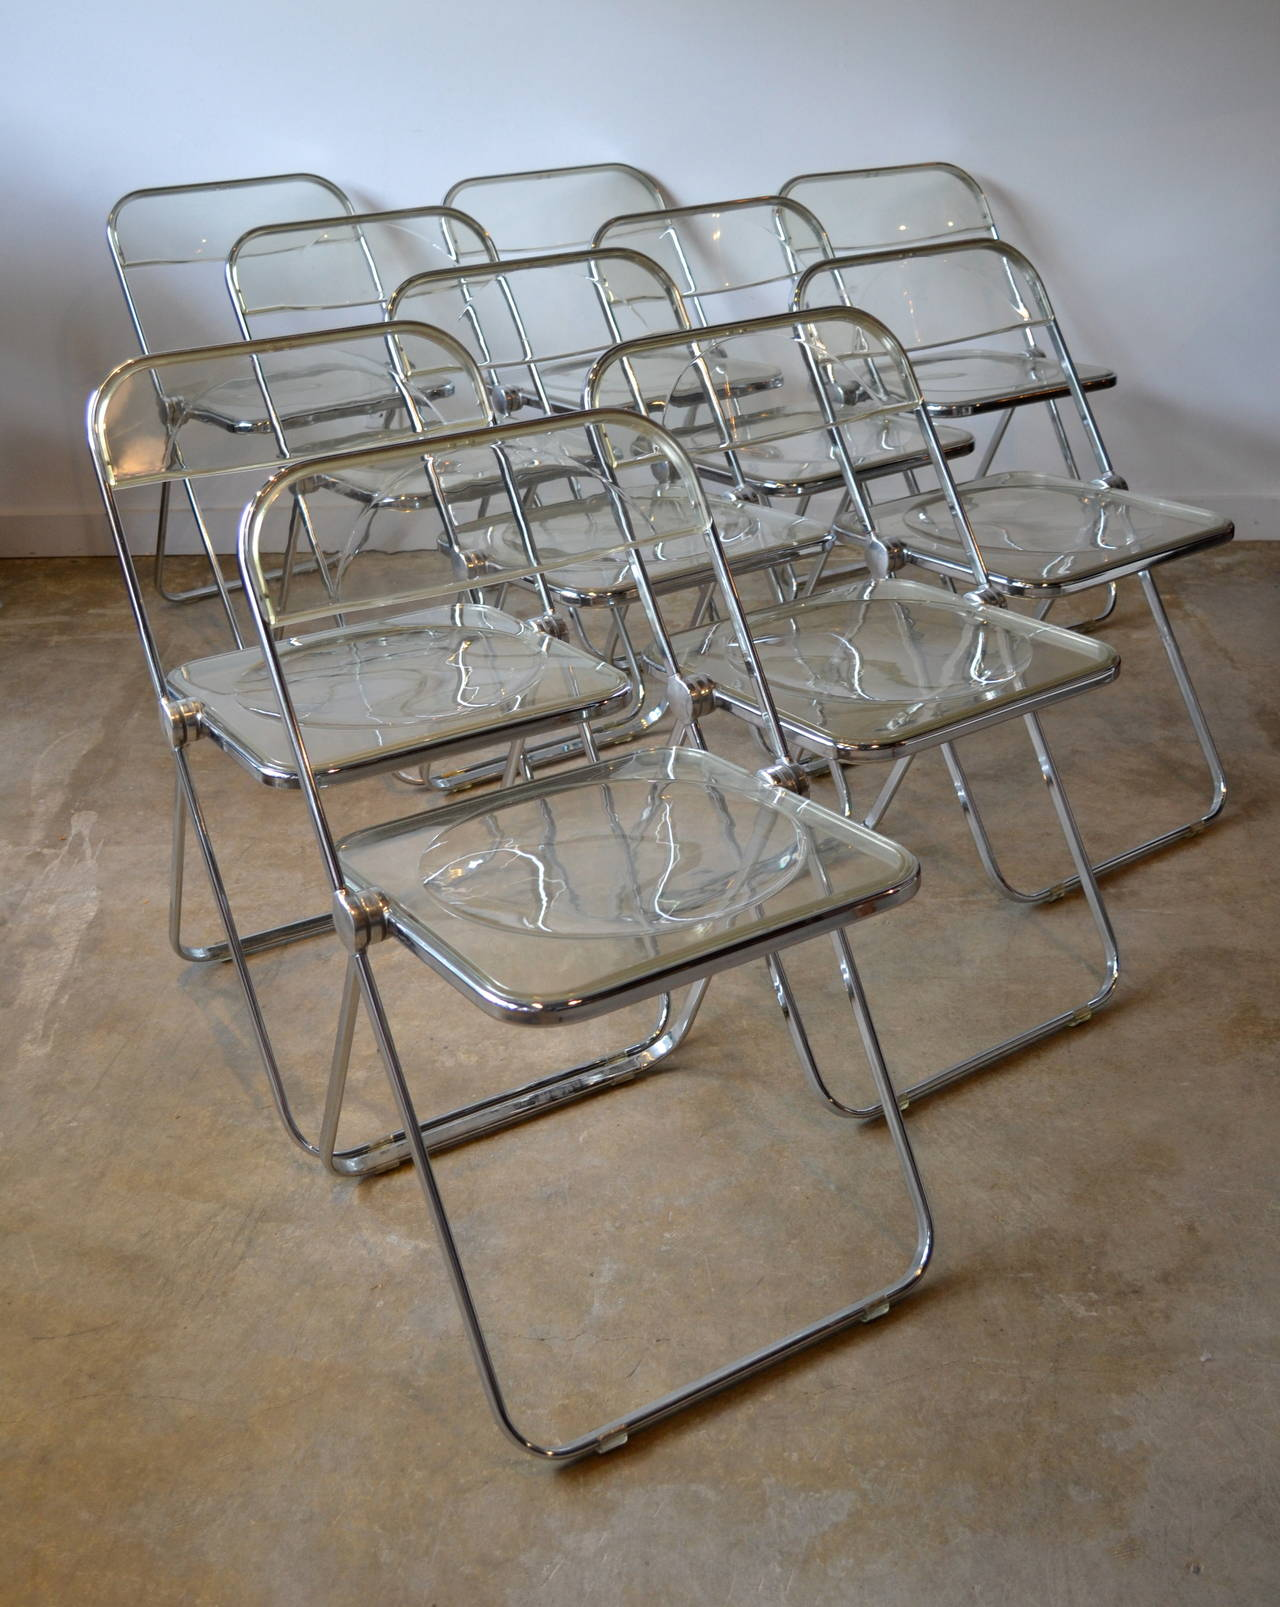 Ten Lucite And Aluminum Folding Chairs Designed By Giancarlo Piretti For  Castelli, MoMA, 1967